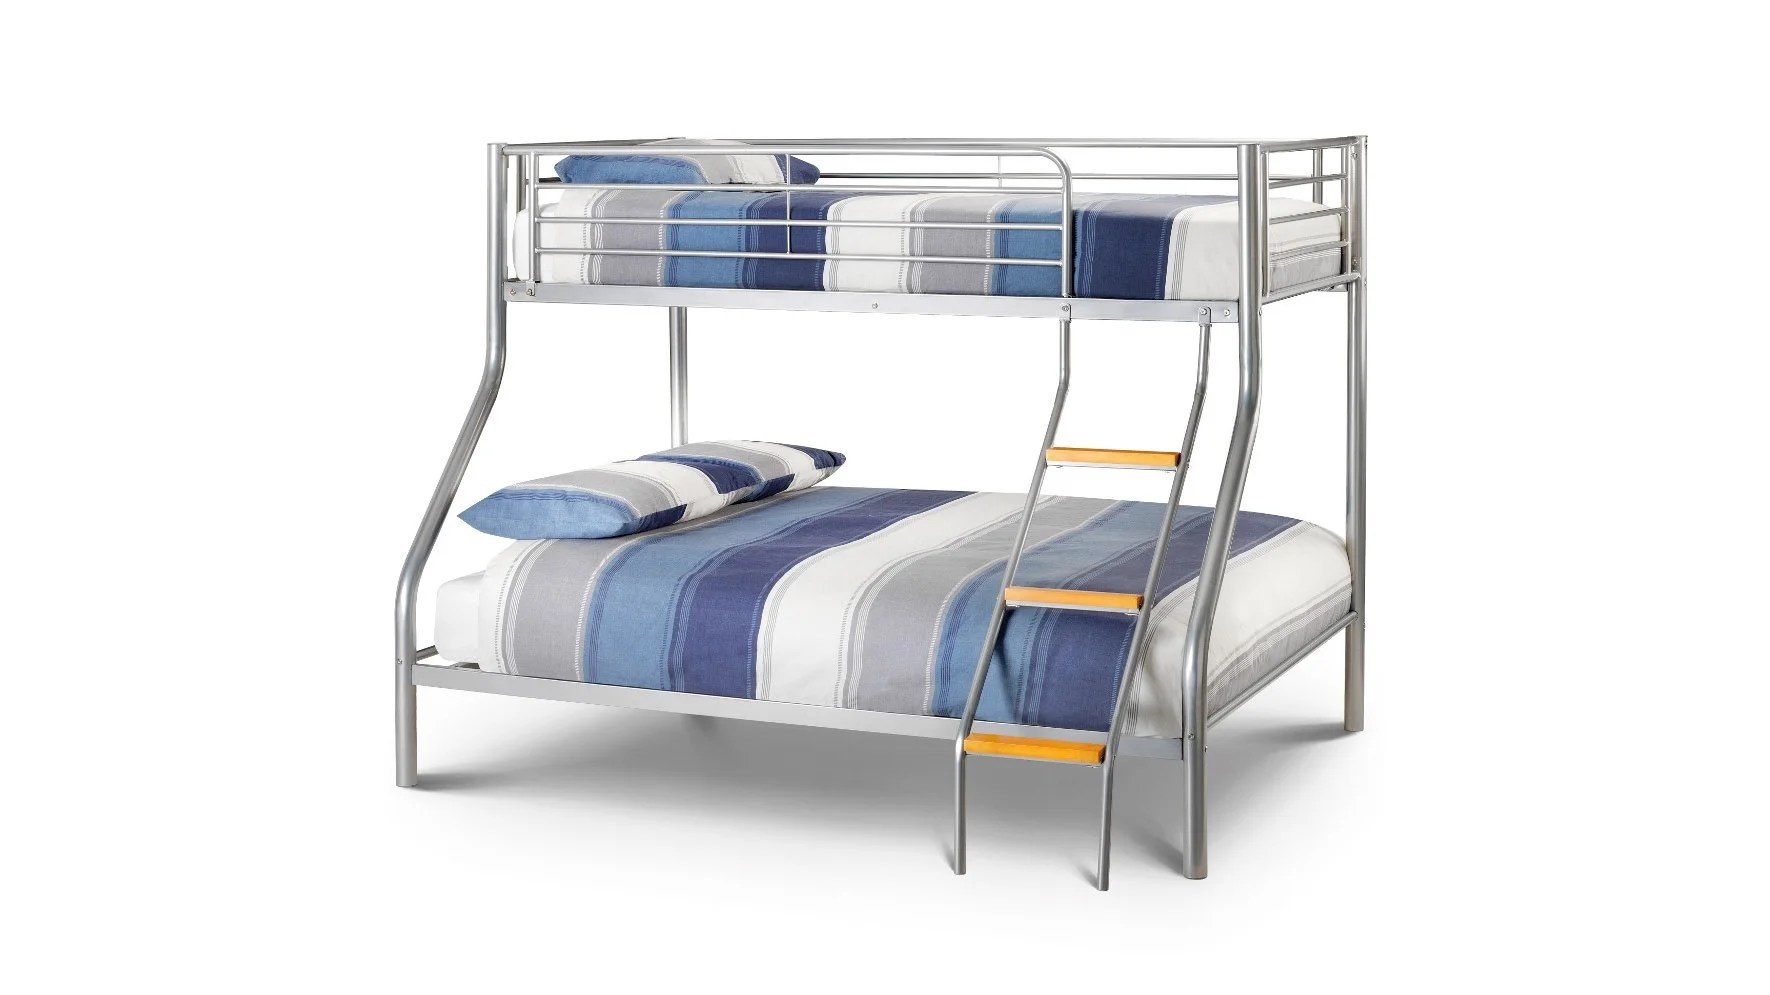 Saturn Bunk Bed Best Bunk Bed From Basic Bunk Beds To Storage And Slides Expert